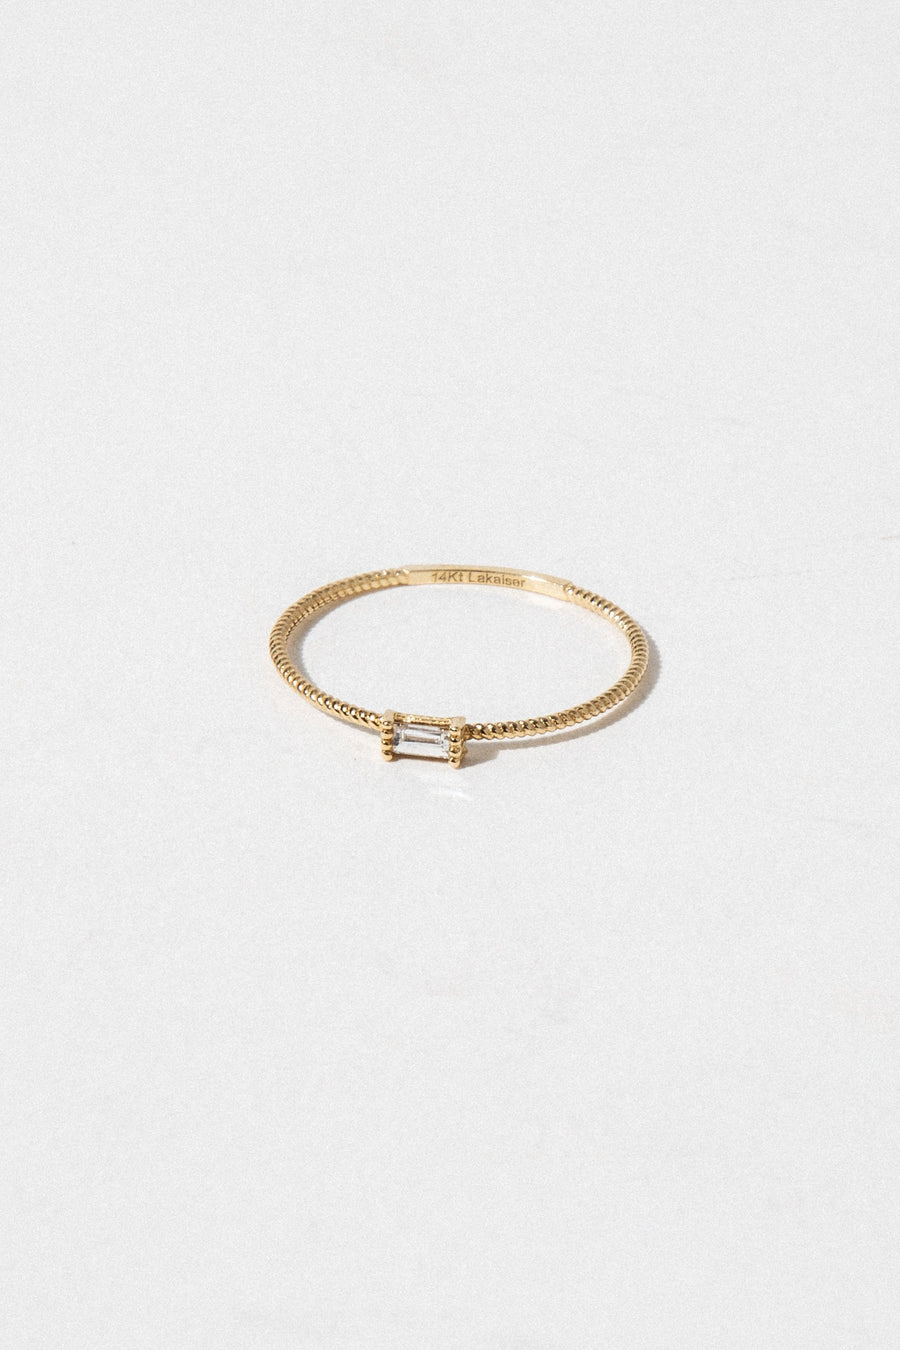 LA KAISER Jewelry Golden Grace Twist Ring